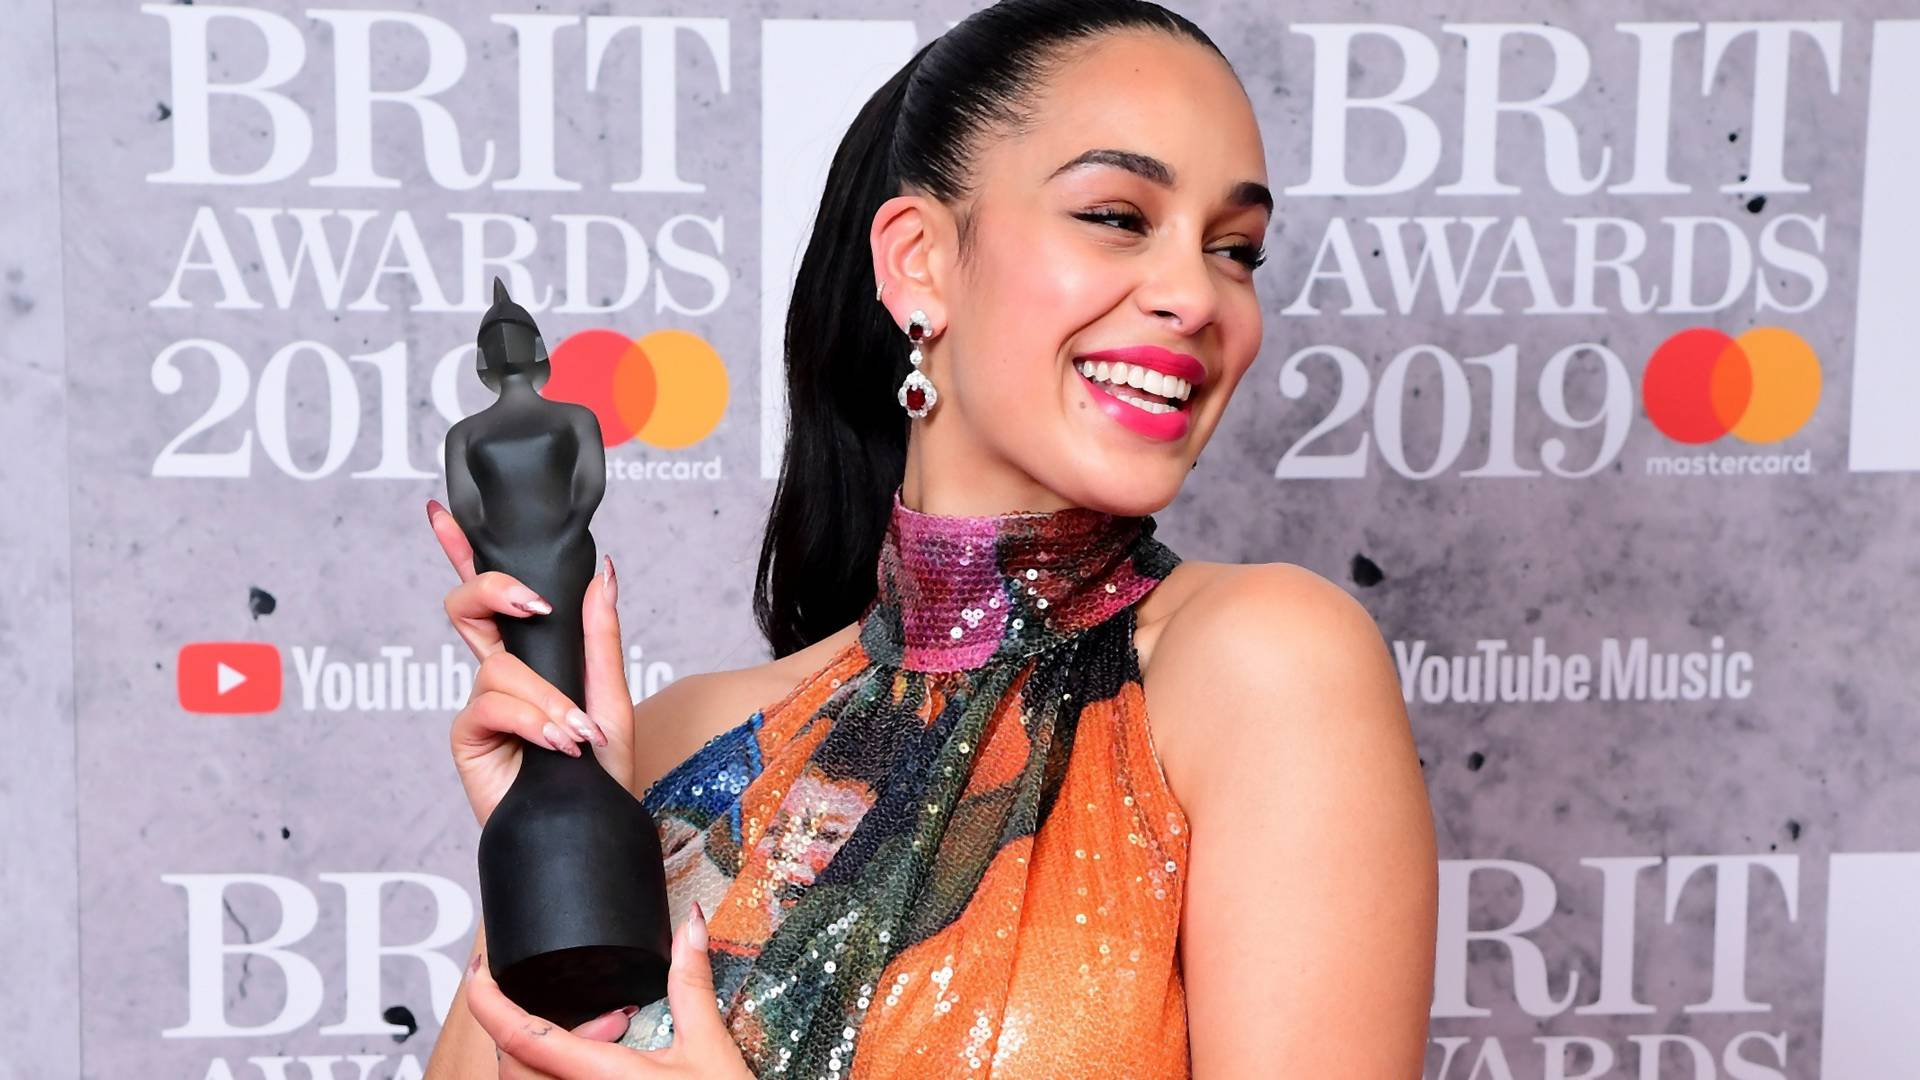 The 1975, Ariana Grande, Jorja Smith: Das sind die Gewinner der BRIT Awards 2019